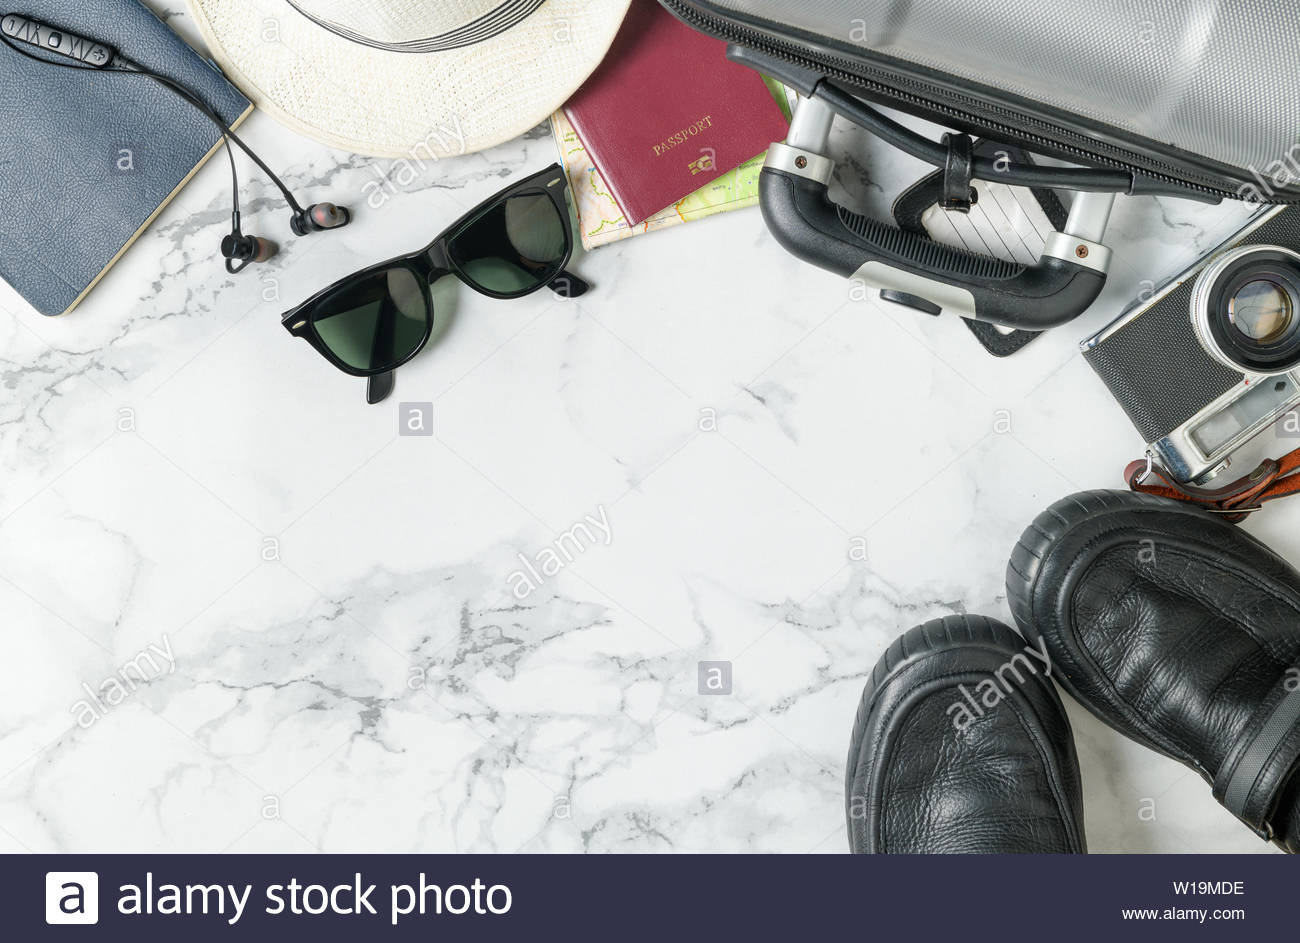 prepare suitcase accessories and travel items background on marble 1300x943